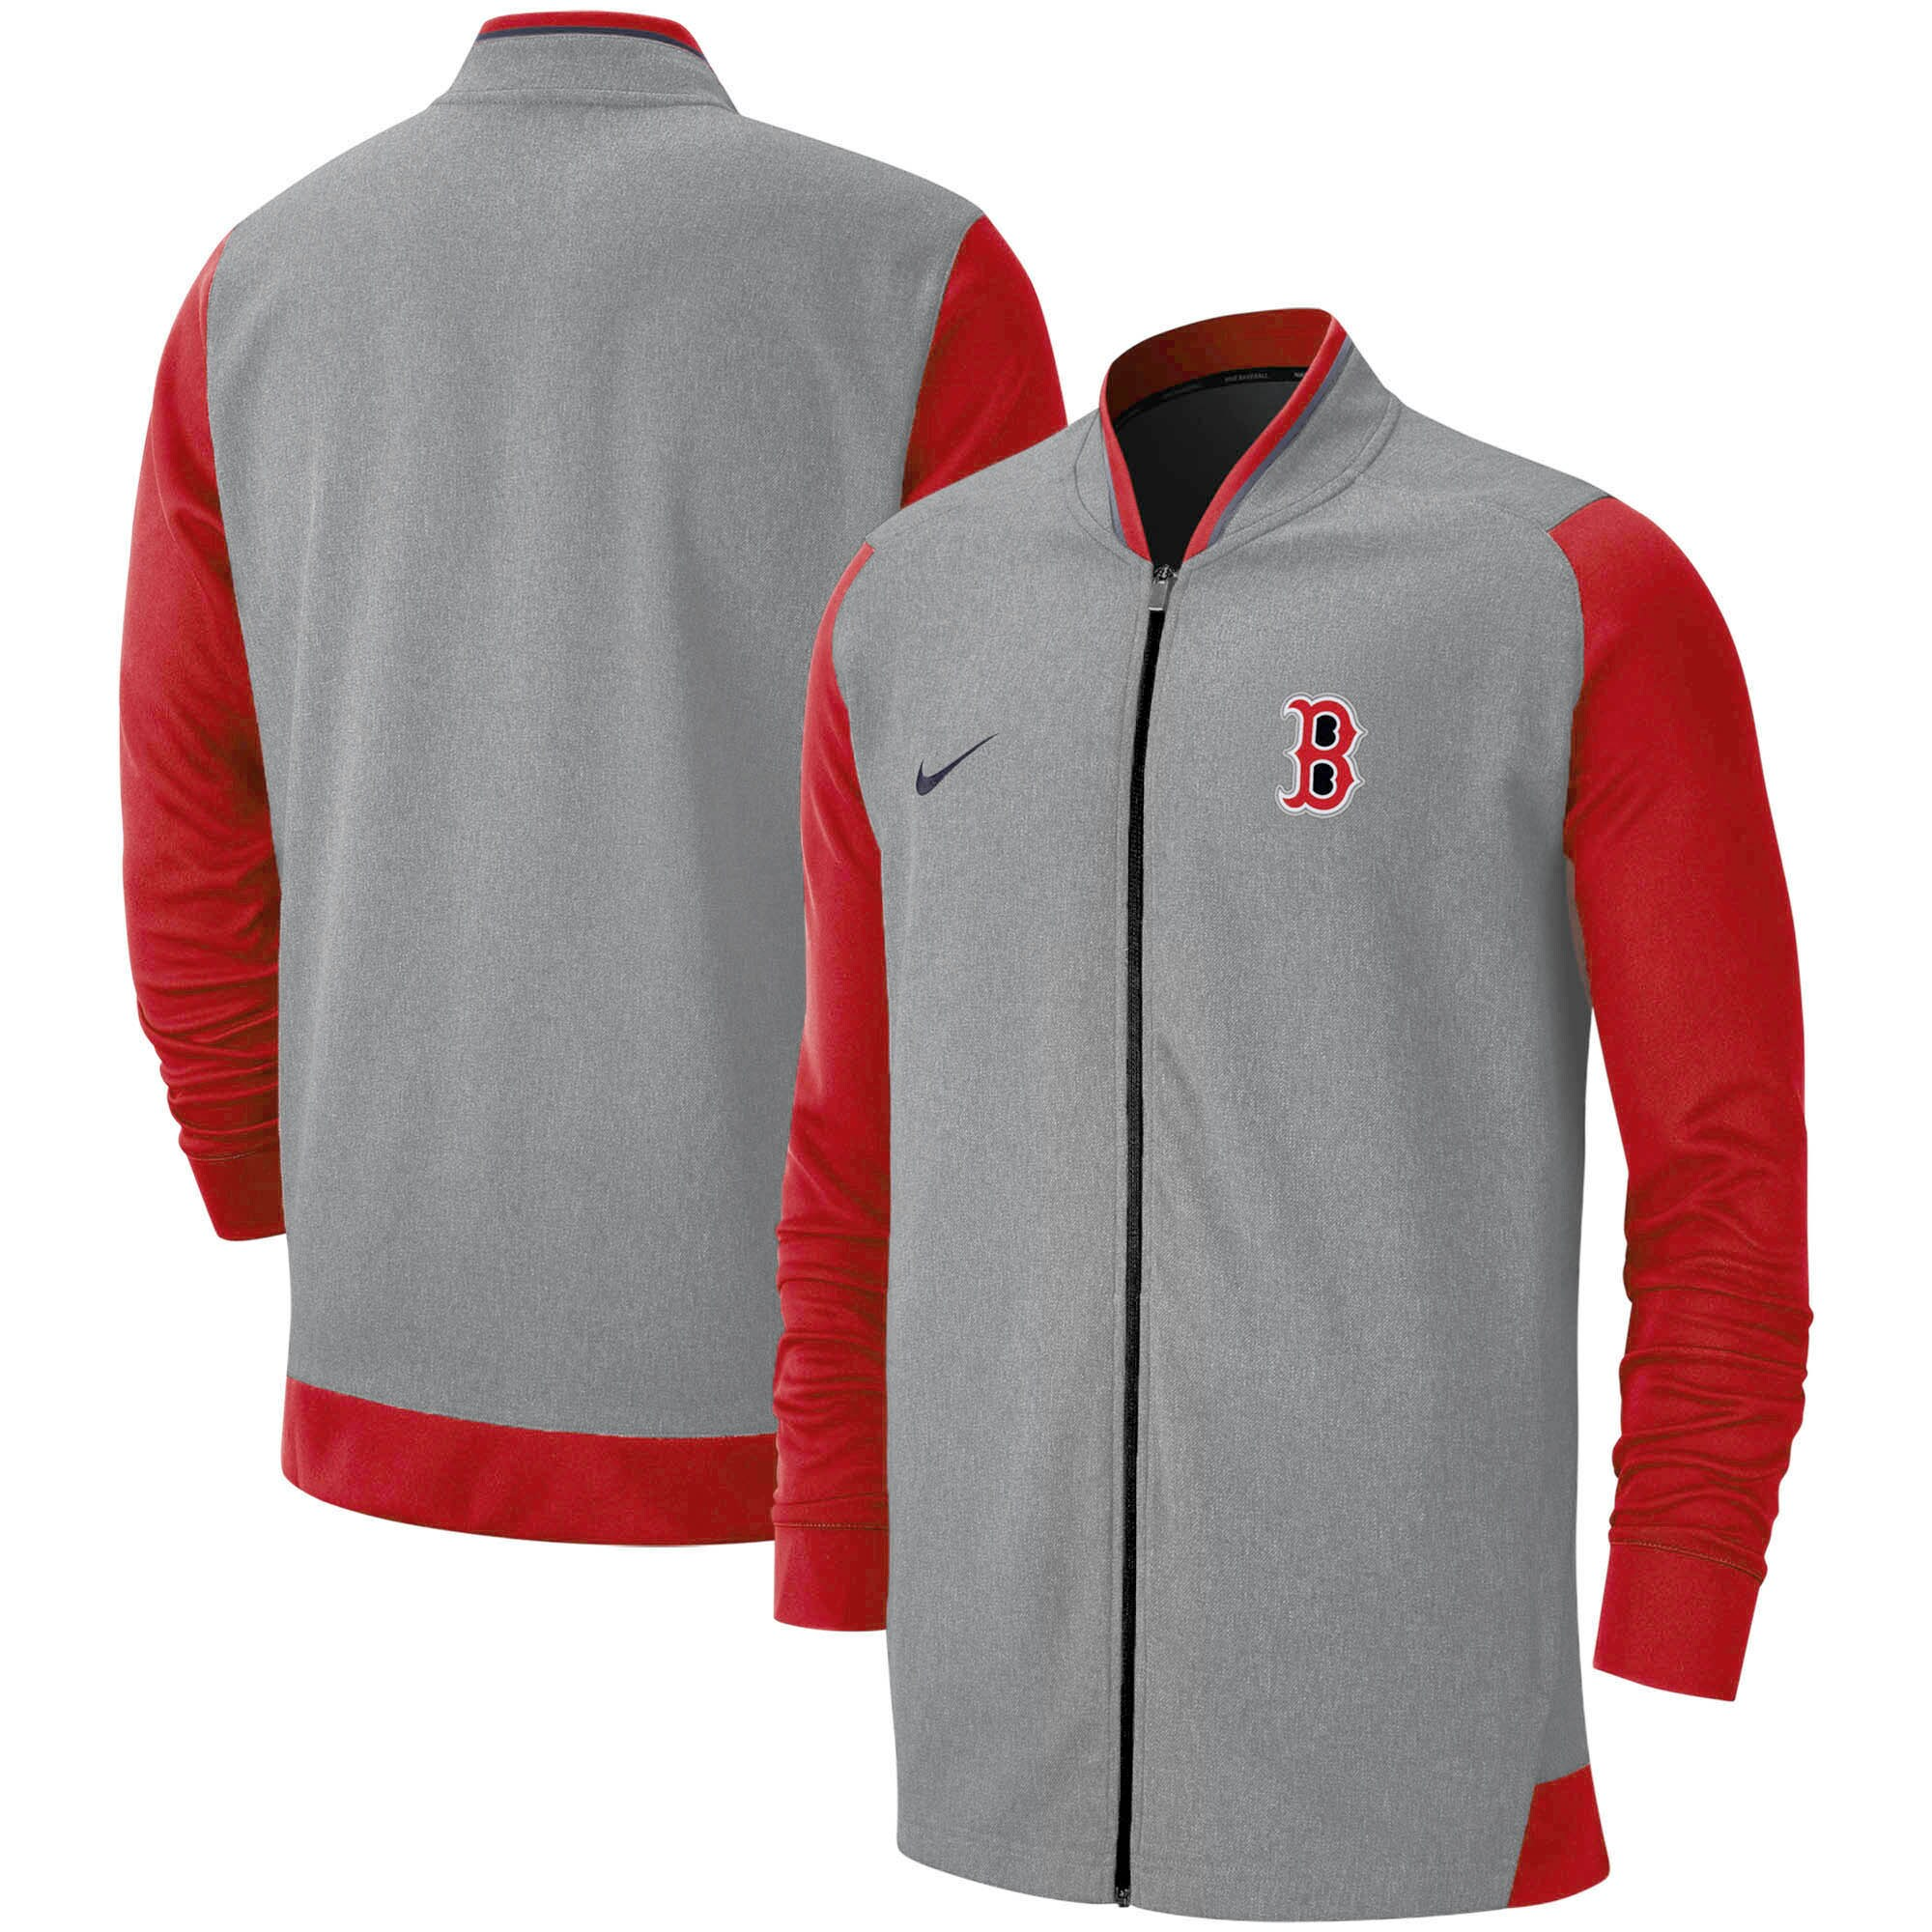 Boston Red Sox Nike Game Performance Full-Zip Jacket - Gray/Red